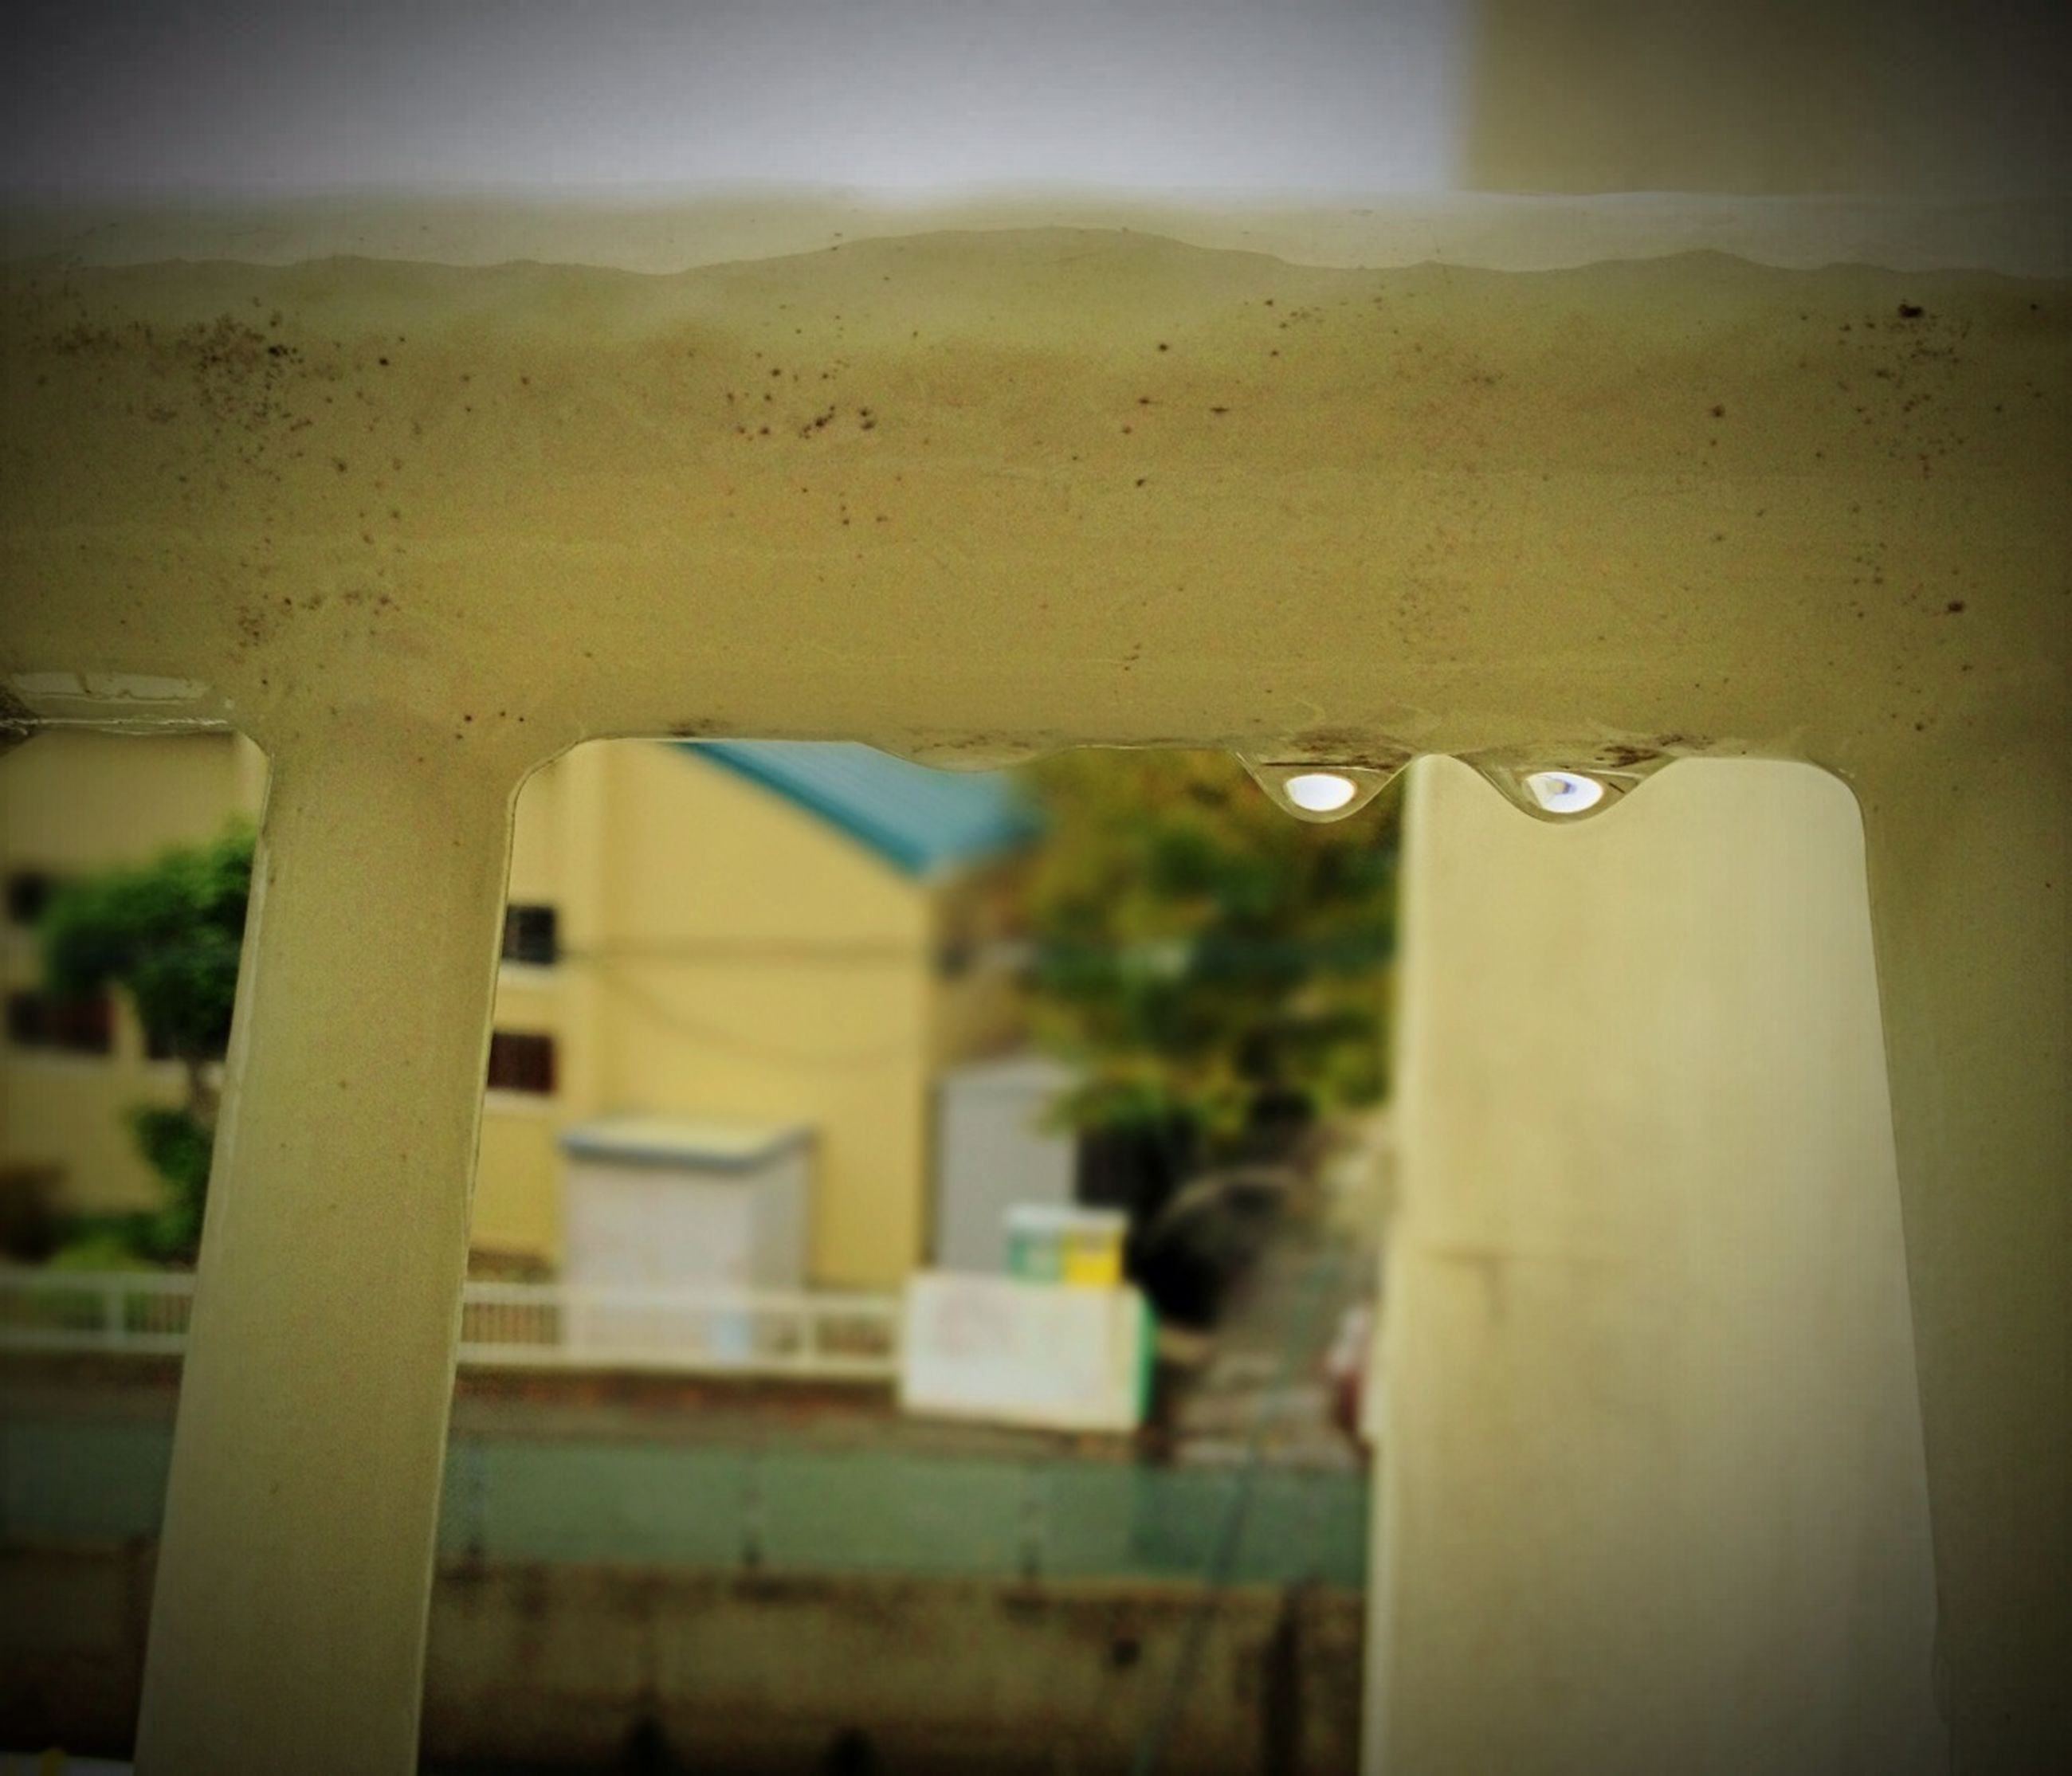 architecture, built structure, building exterior, focus on foreground, drop, close-up, water, sky, wet, window, no people, indoors, selective focus, illuminated, building, day, transparent, sunlight, low angle view